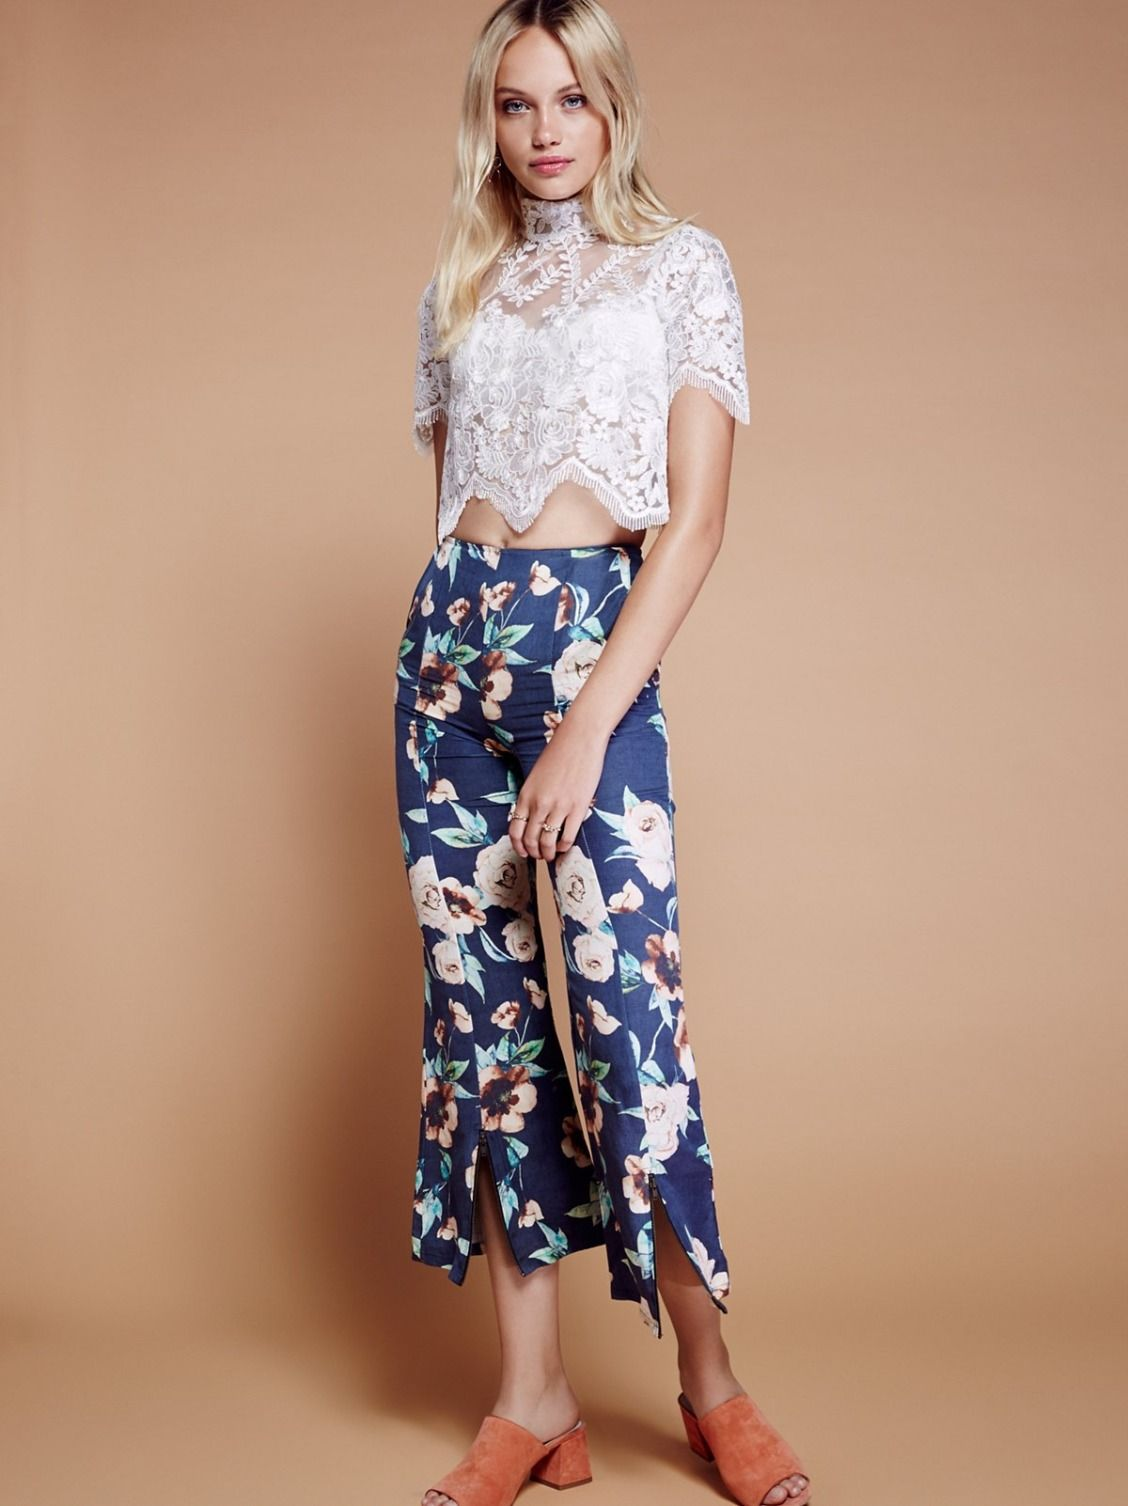 Lily Set | Perfectly mixed set featuring a sheer top and retro-inspired cropped bells. Top has an elegant mock neck with a sweetly scalloped hem and a romantic floral design. Floral pants have a high-waist fit with zipped vents along the front hem. Side pockets. Back zipper closure on both pieces.